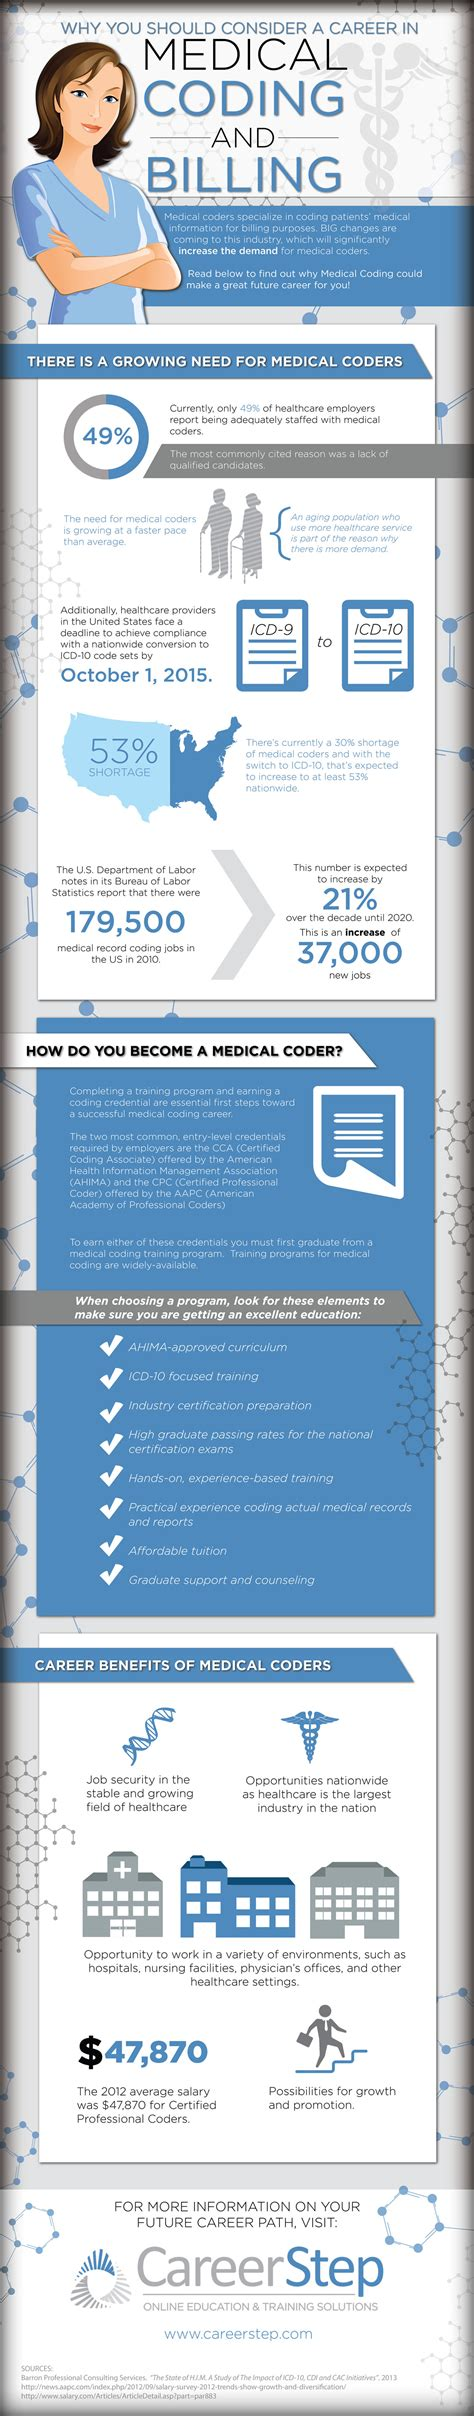 Understanding medical billing codes and how to check them. Infographic: Medical Coding & Billing Career Info & Job Outlook - Career Step Blog